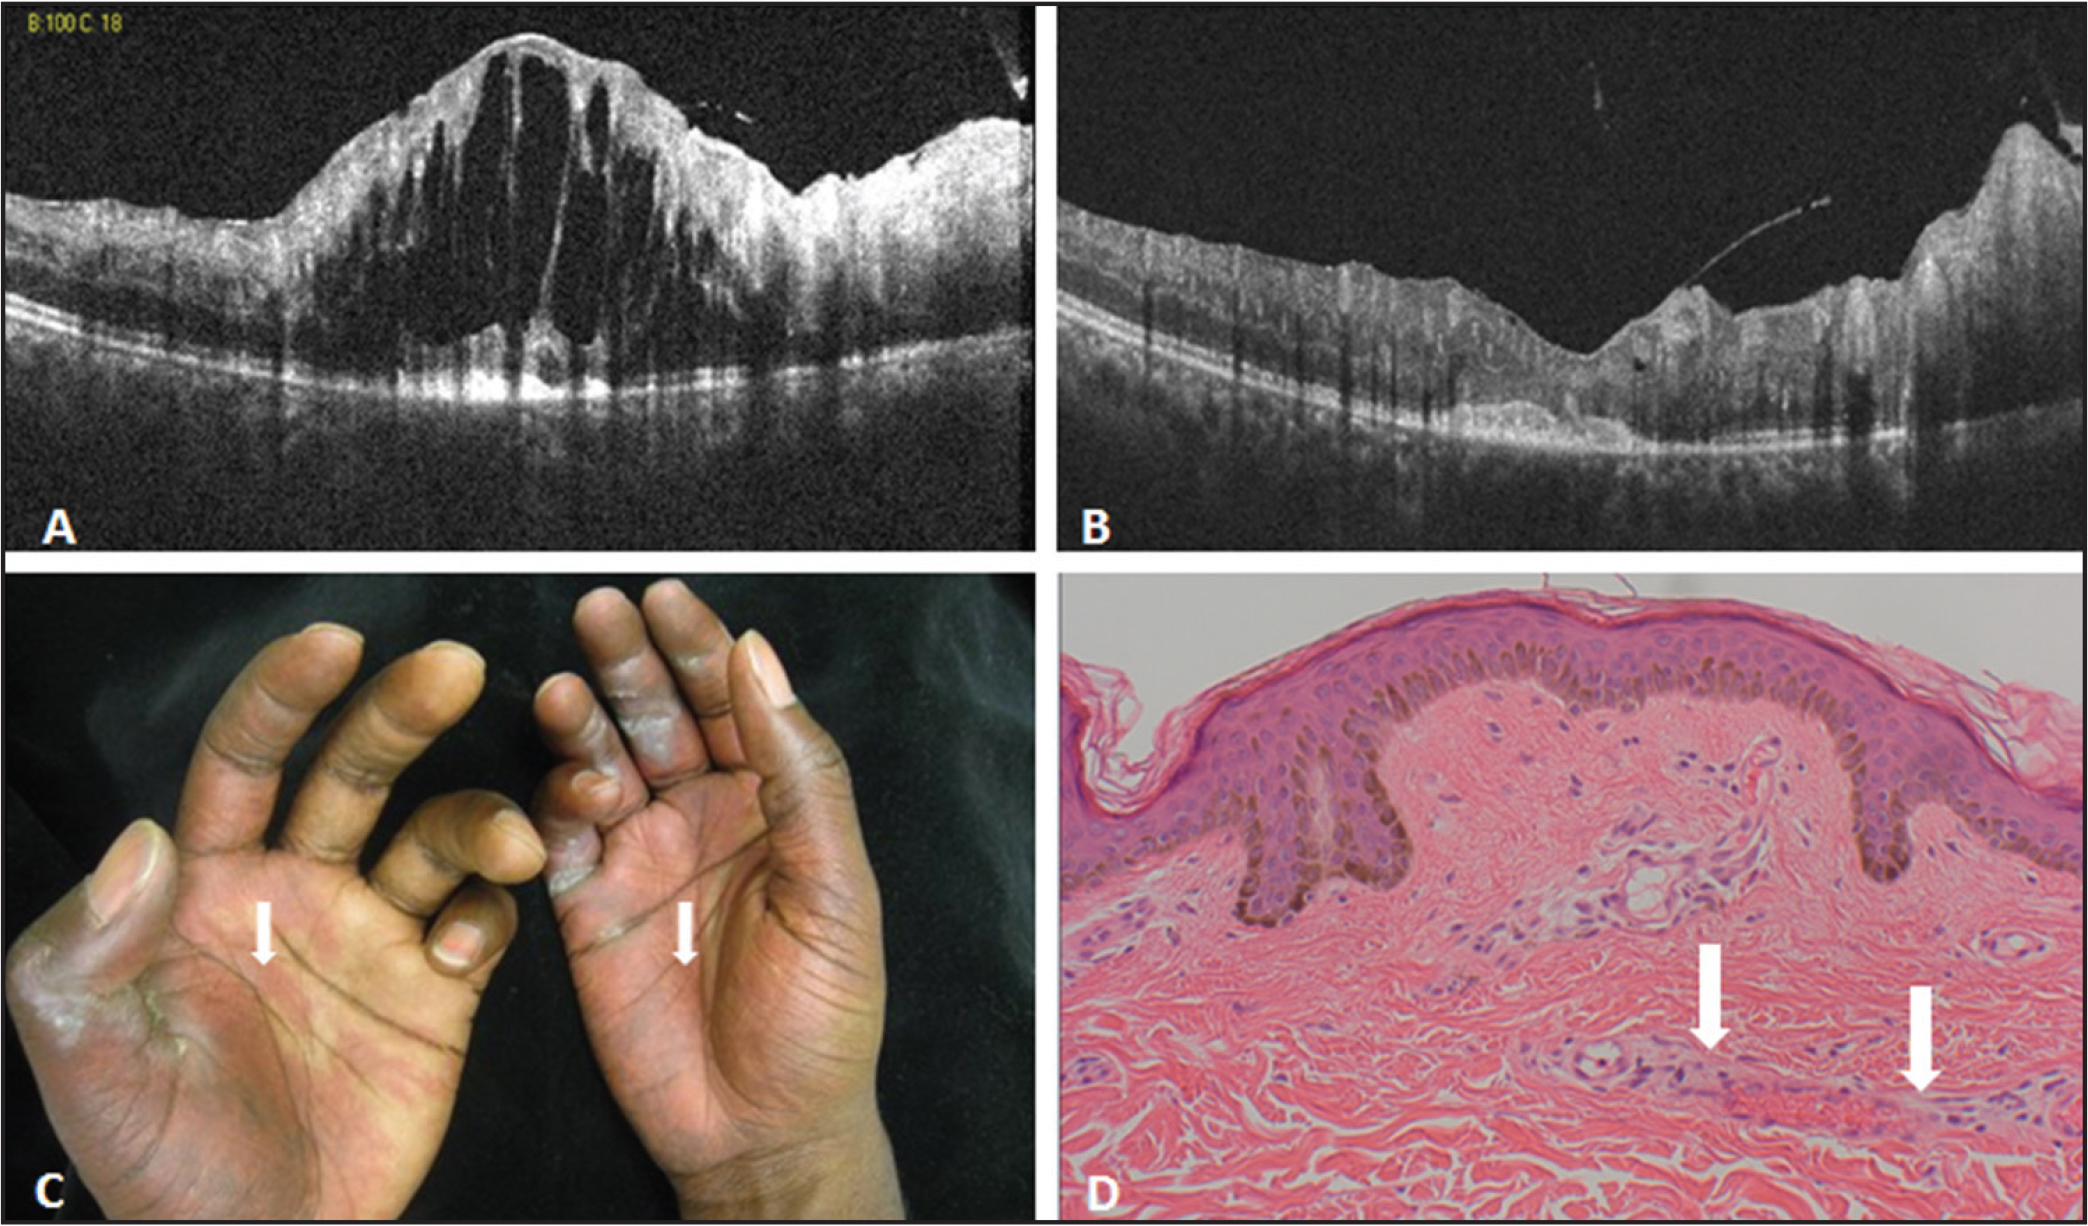 (A) Spectral-domain optical coherence tomography (SD-OCT) showing cystoid macular changes. (B) SD-OCT 2 weeks after injection of bevacizumab showing near-complete resolution of the intraretinal fluid. (C) Violaceous rash of extremities. (D) Hematoxylin and eosin (200×) punch biopsy of involved skin showing rare congested vessels (arrow).